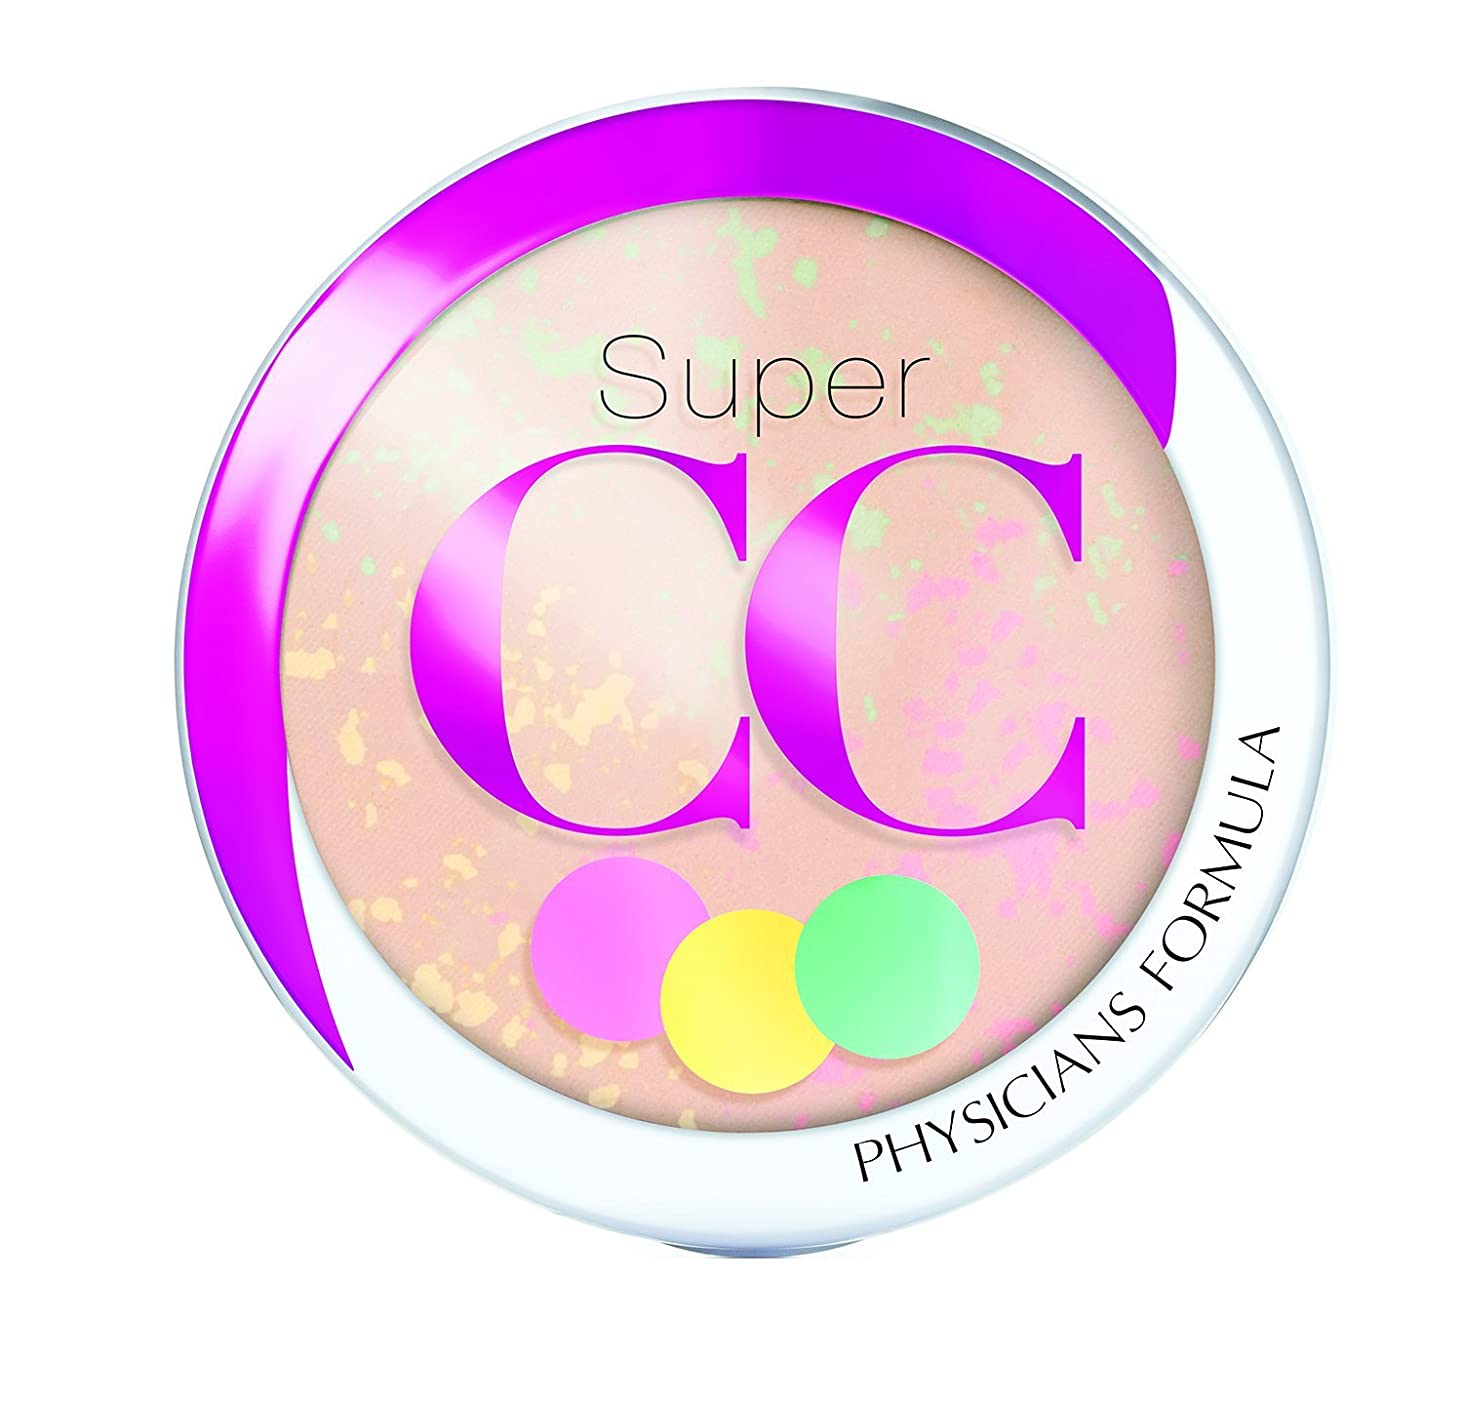 権利を与える真面目なヒントPHYSICIANS FORMULA Super CC+ Color-Correction + Care CC+ Powder SPF 30 - Light/Medium